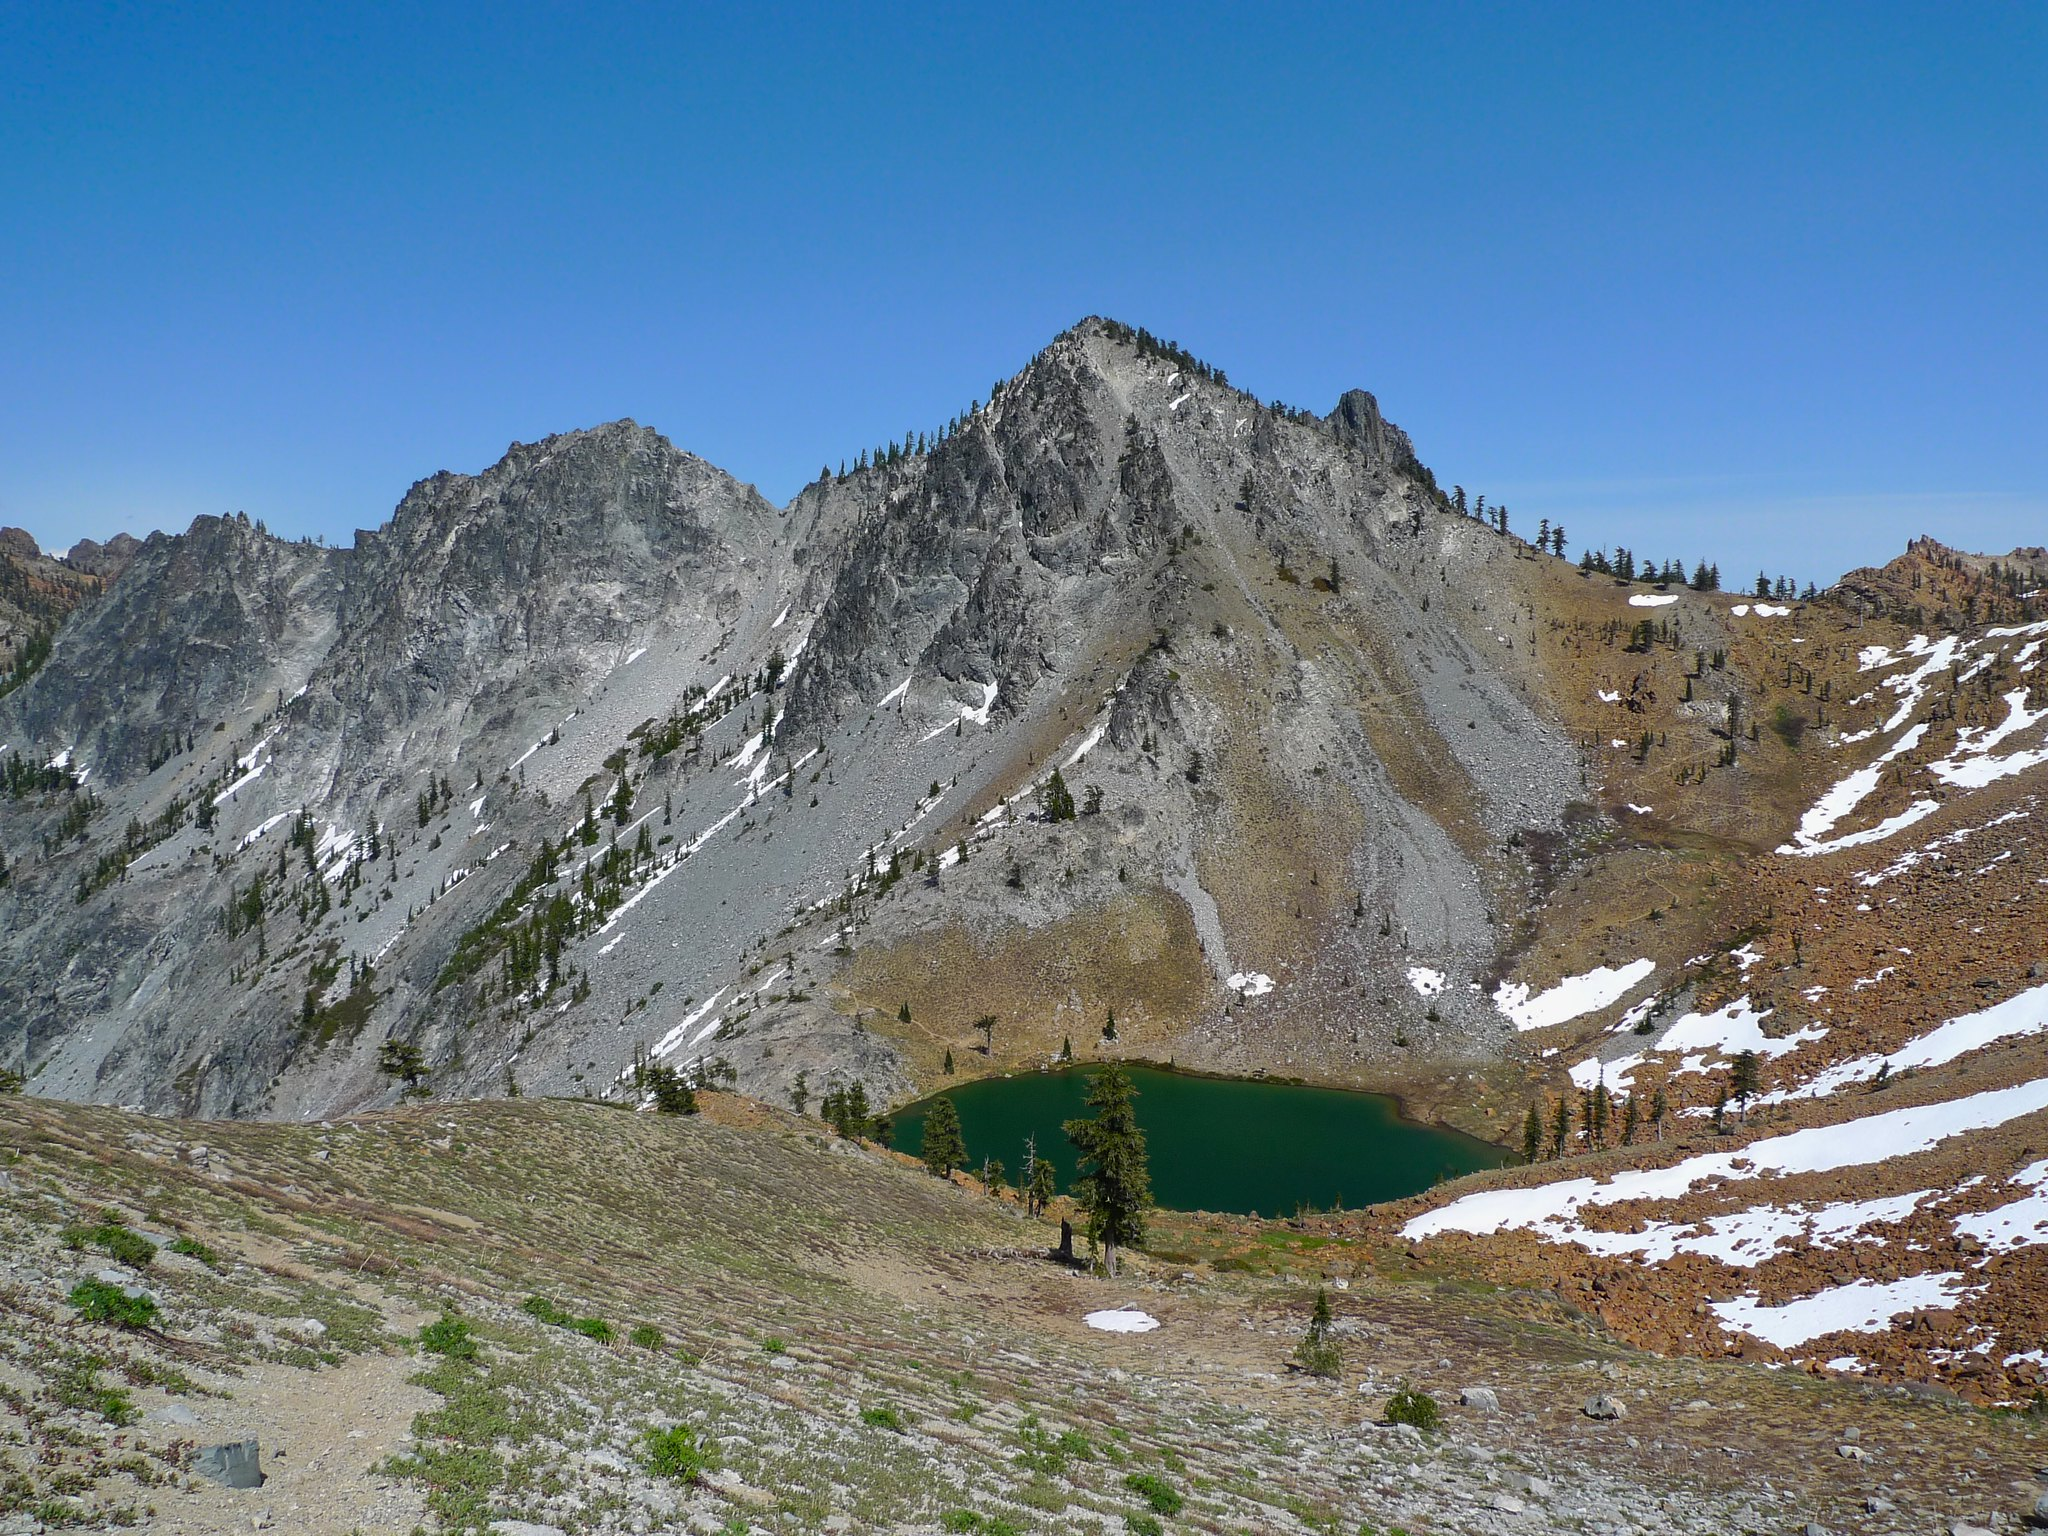 Looking back at Deer Lake and Deer Pass.